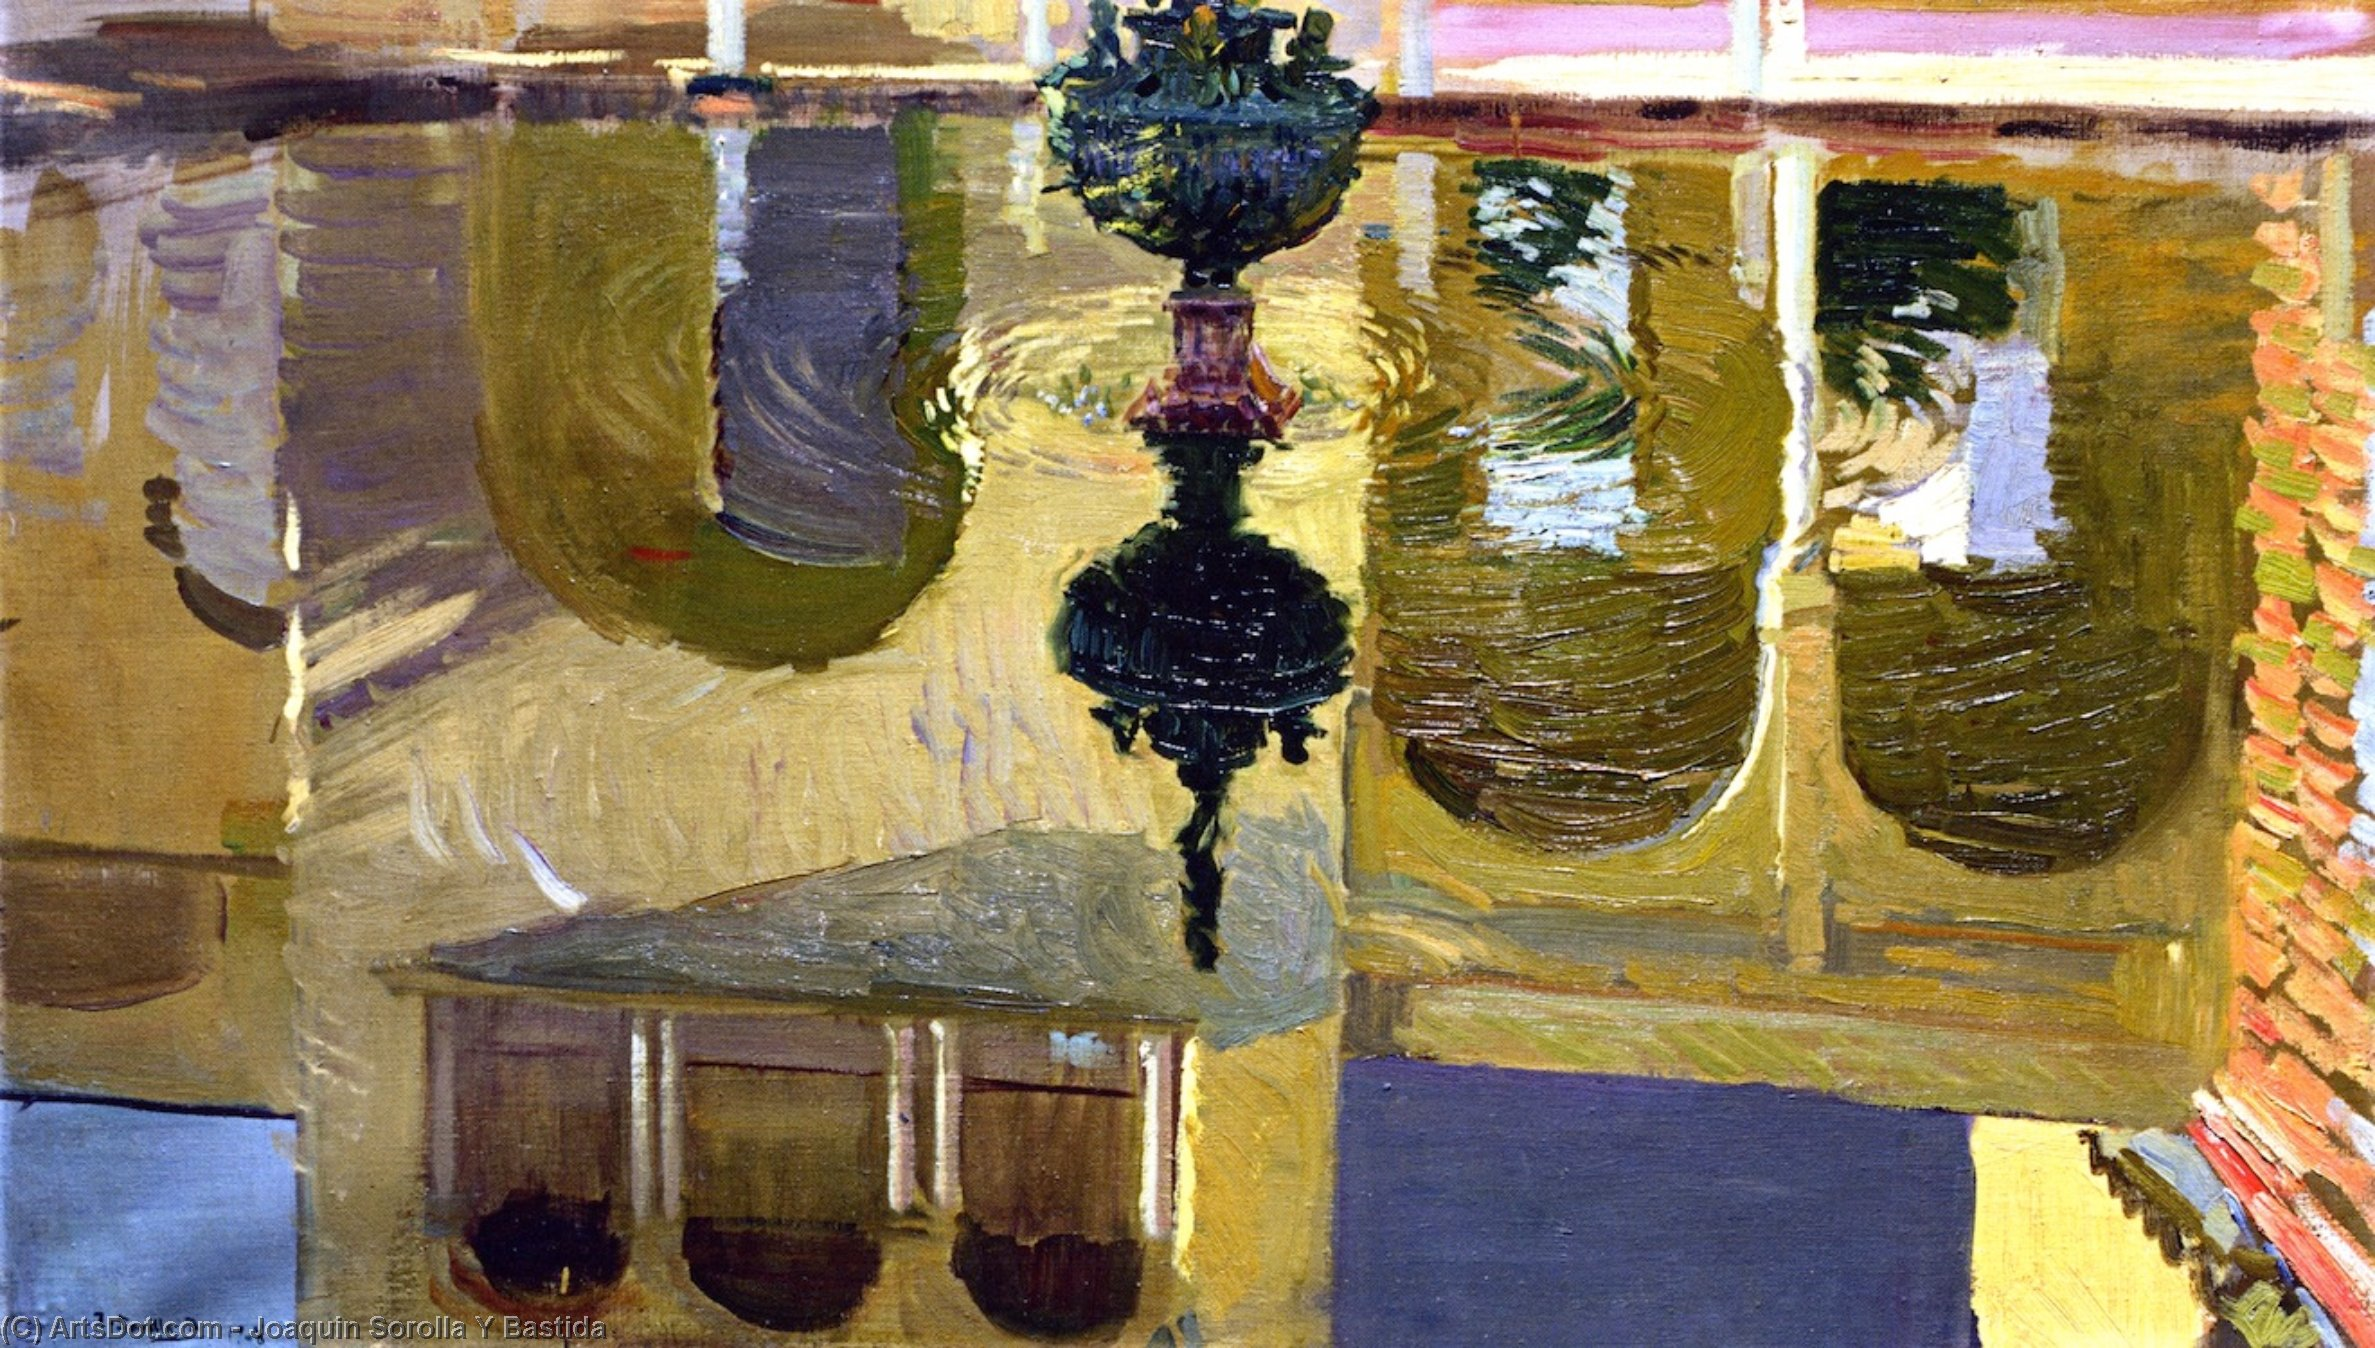 Reflections in a Fountain, Oil On Canvas by Joaquin Sorolla Y Bastida (1863-1923, Spain)